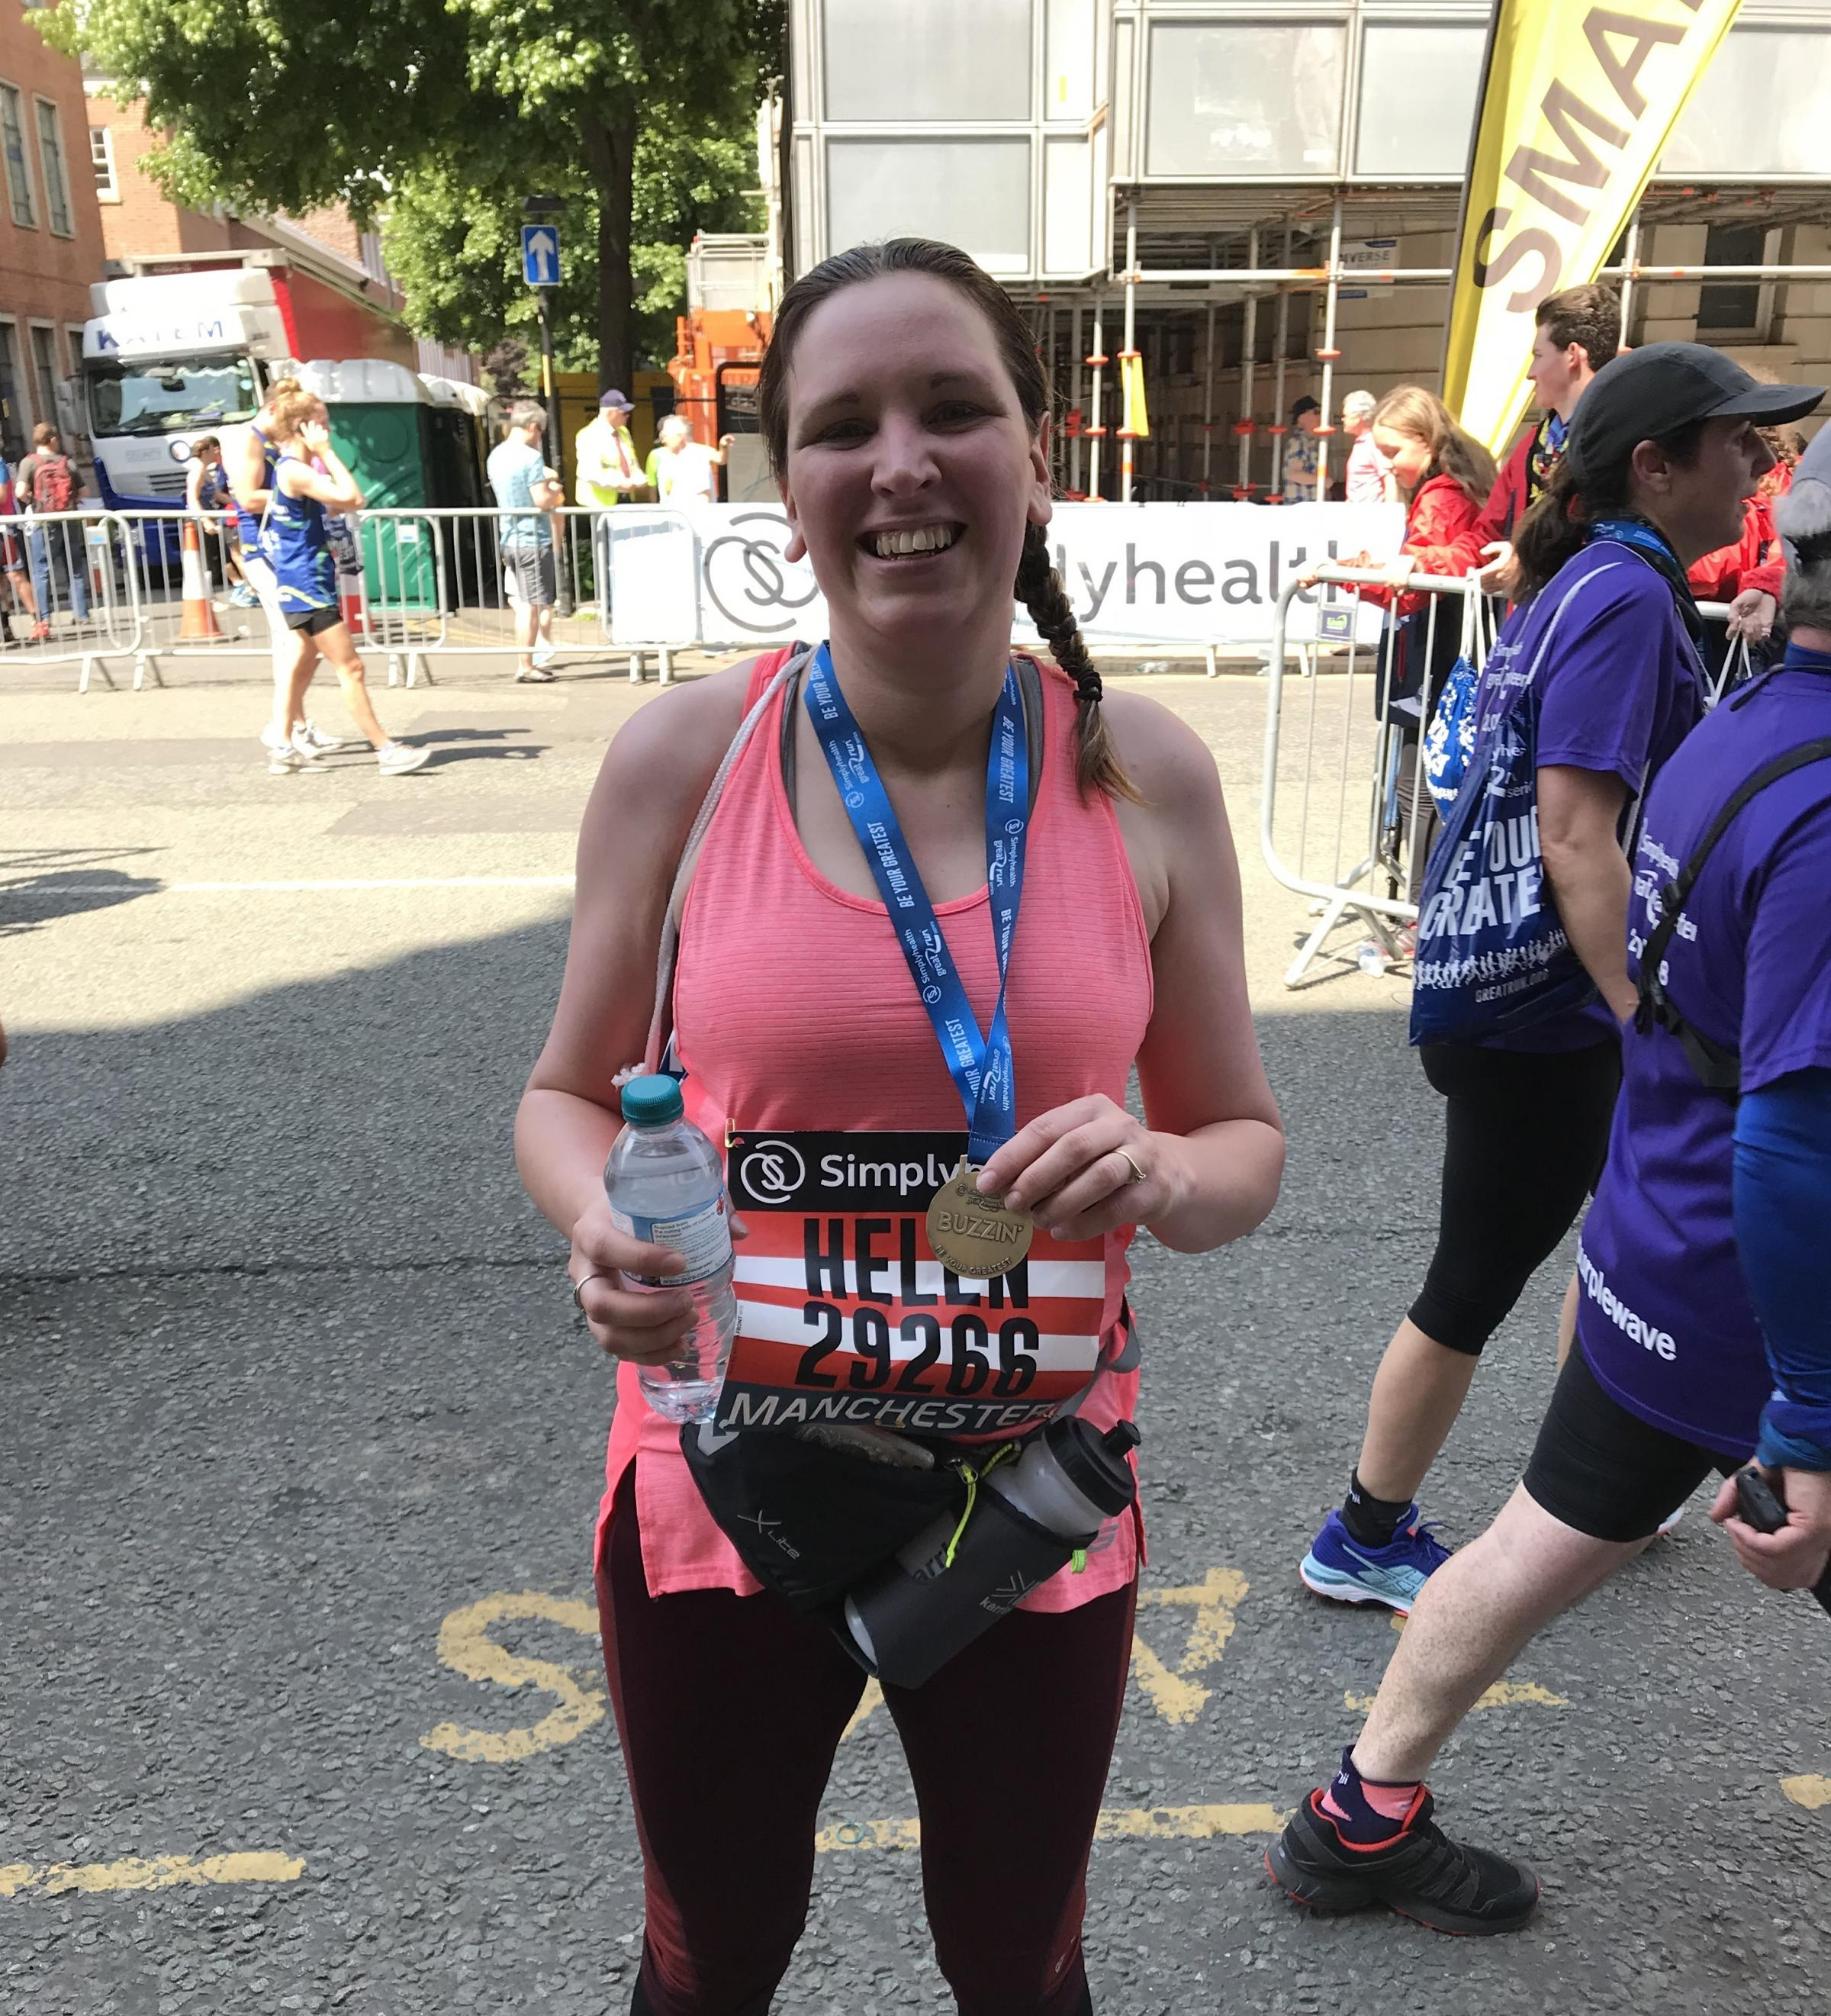 Helen Hirst is pictured after successfully completing the Great Manchester half marathon